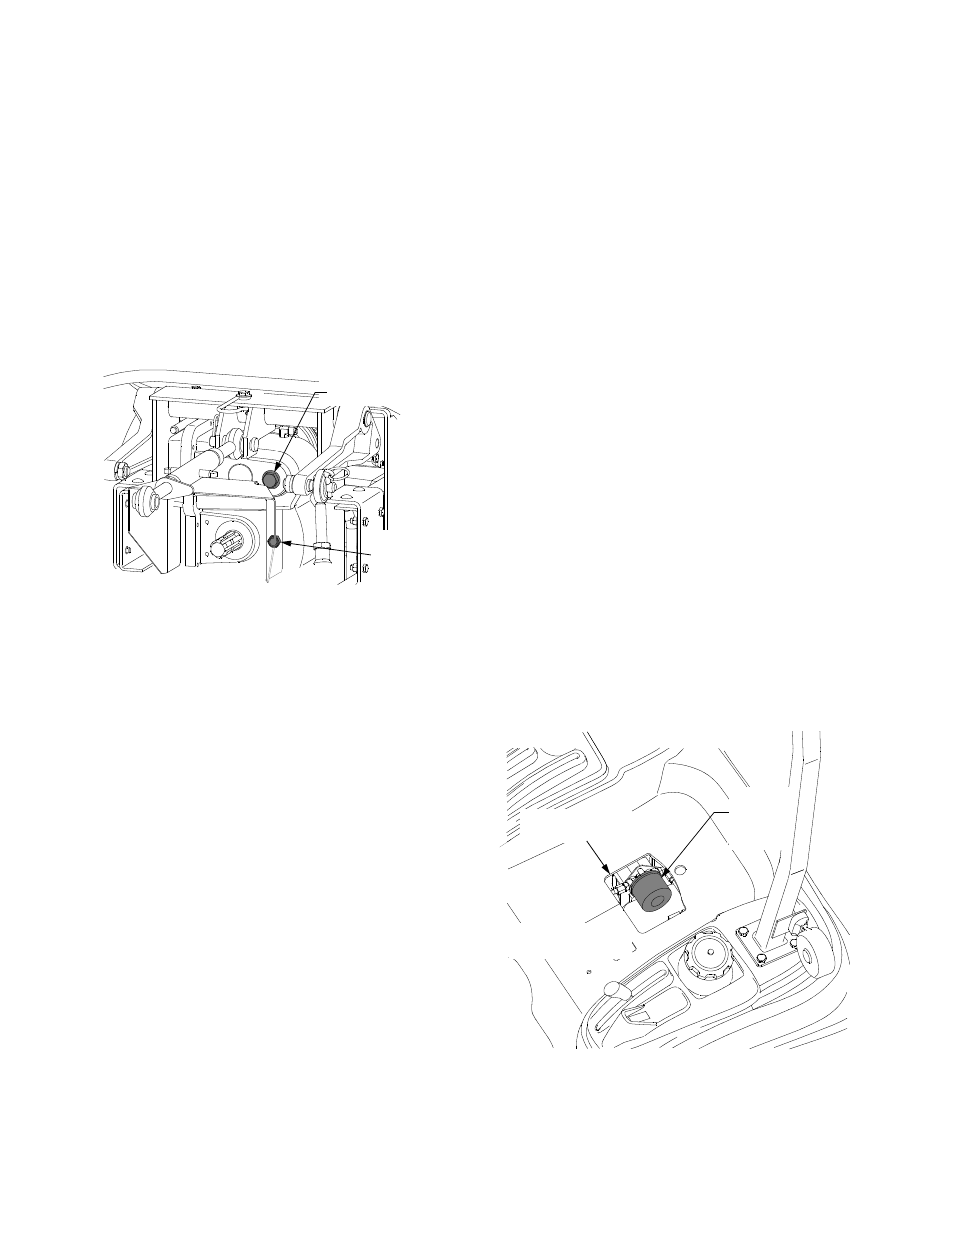 Cub Cadet 5254 Series User Manual | Page 32 / 48 | Also for